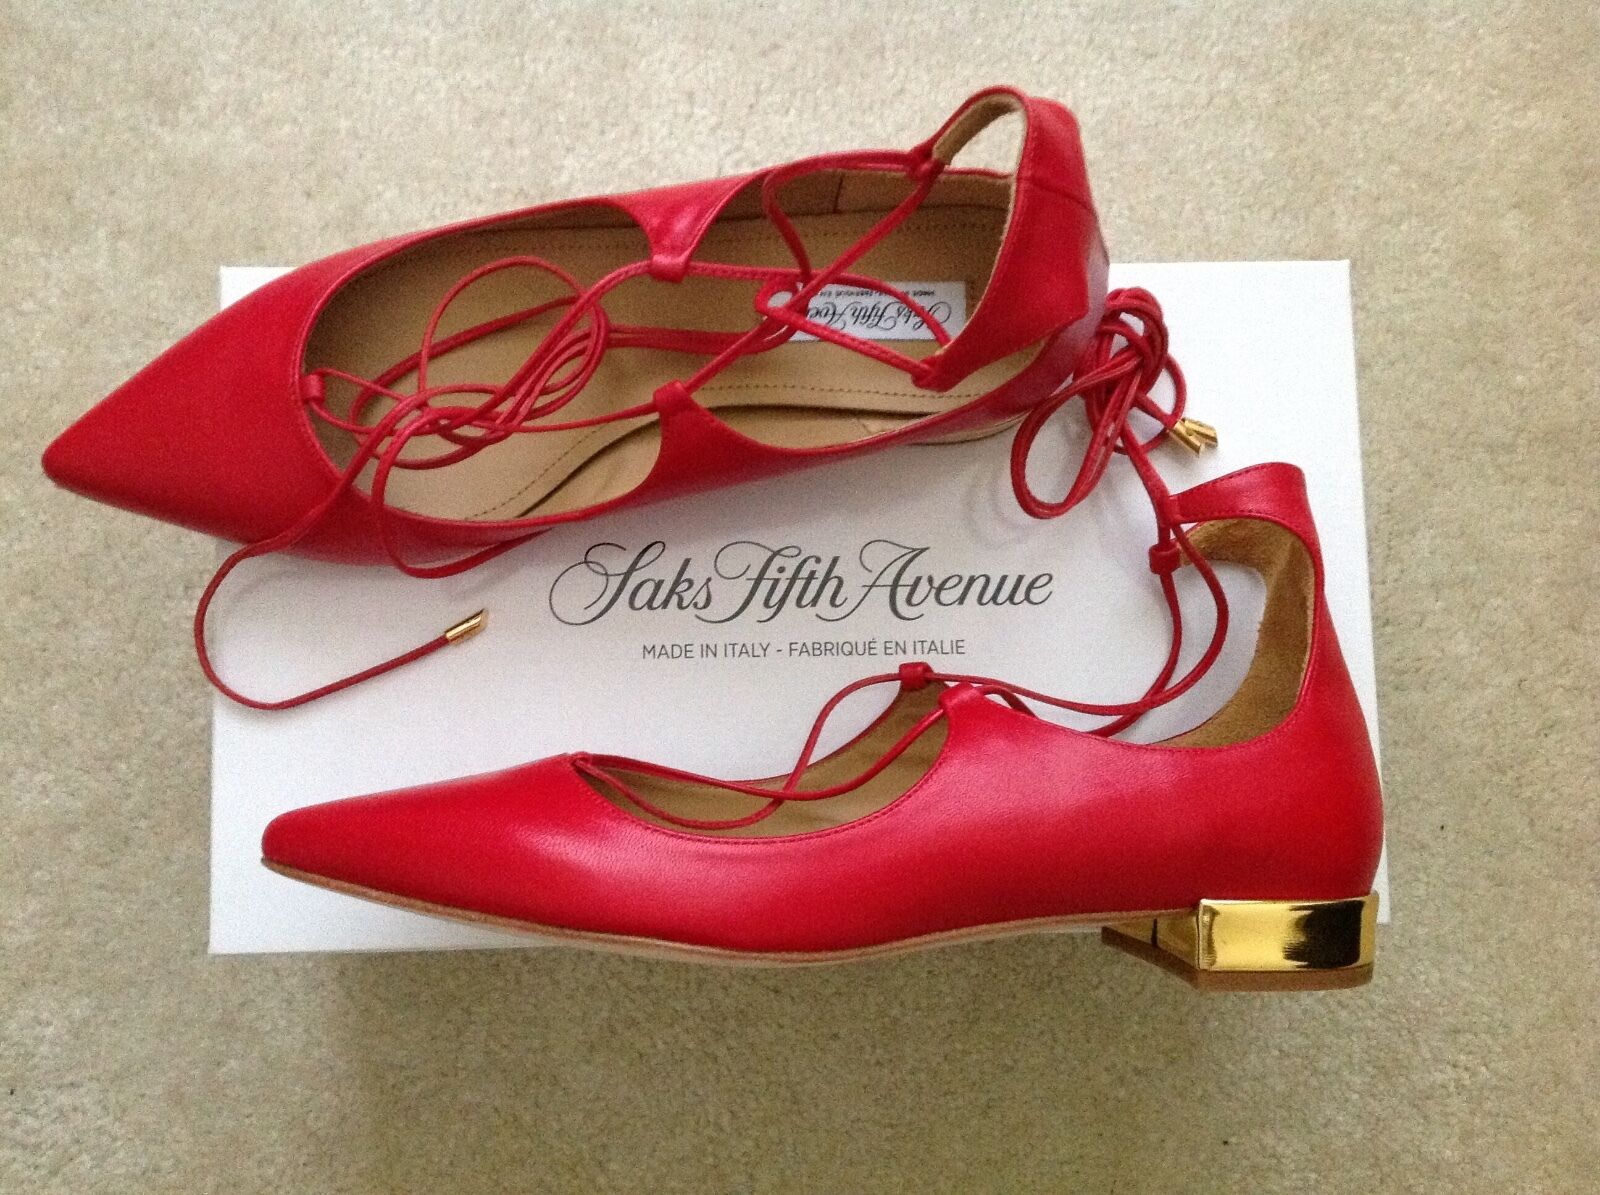 NEW Saks Fifth Avenue Avenue Avenue Christy Lace Up Flats Size 8 Red Leather Aquazzura style 3d1d02